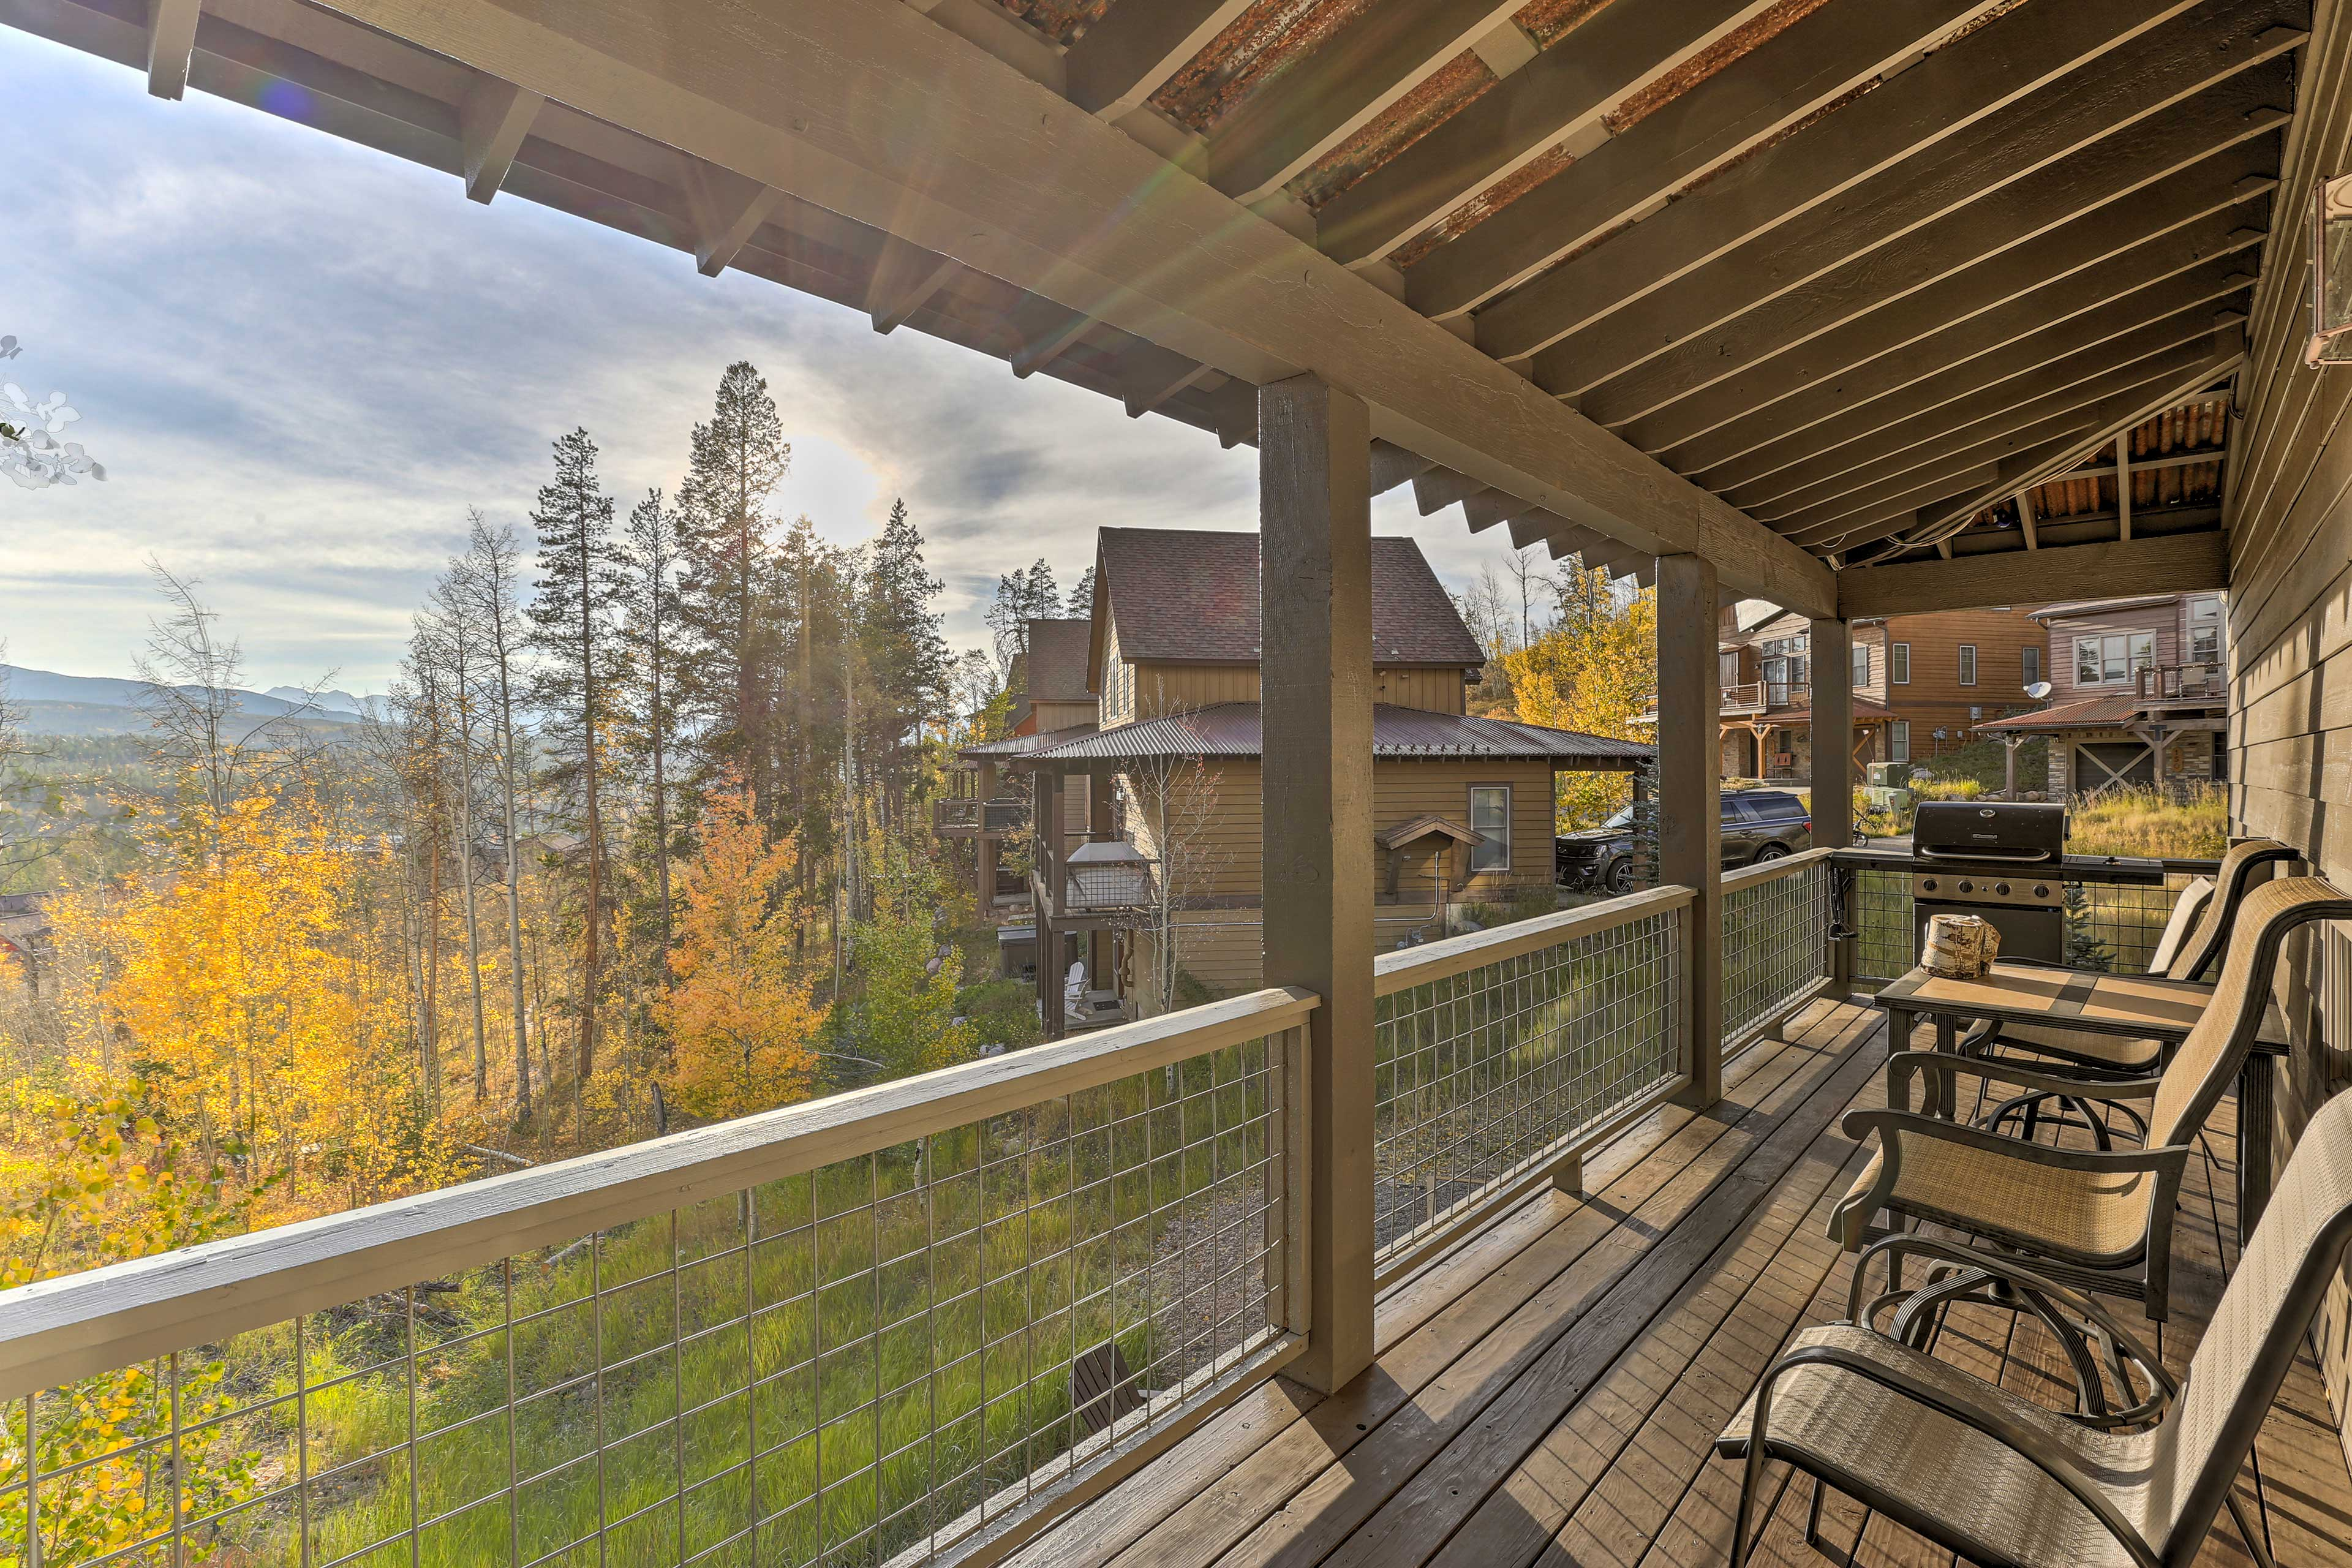 This lovely outdoor space overlooks the mountains.